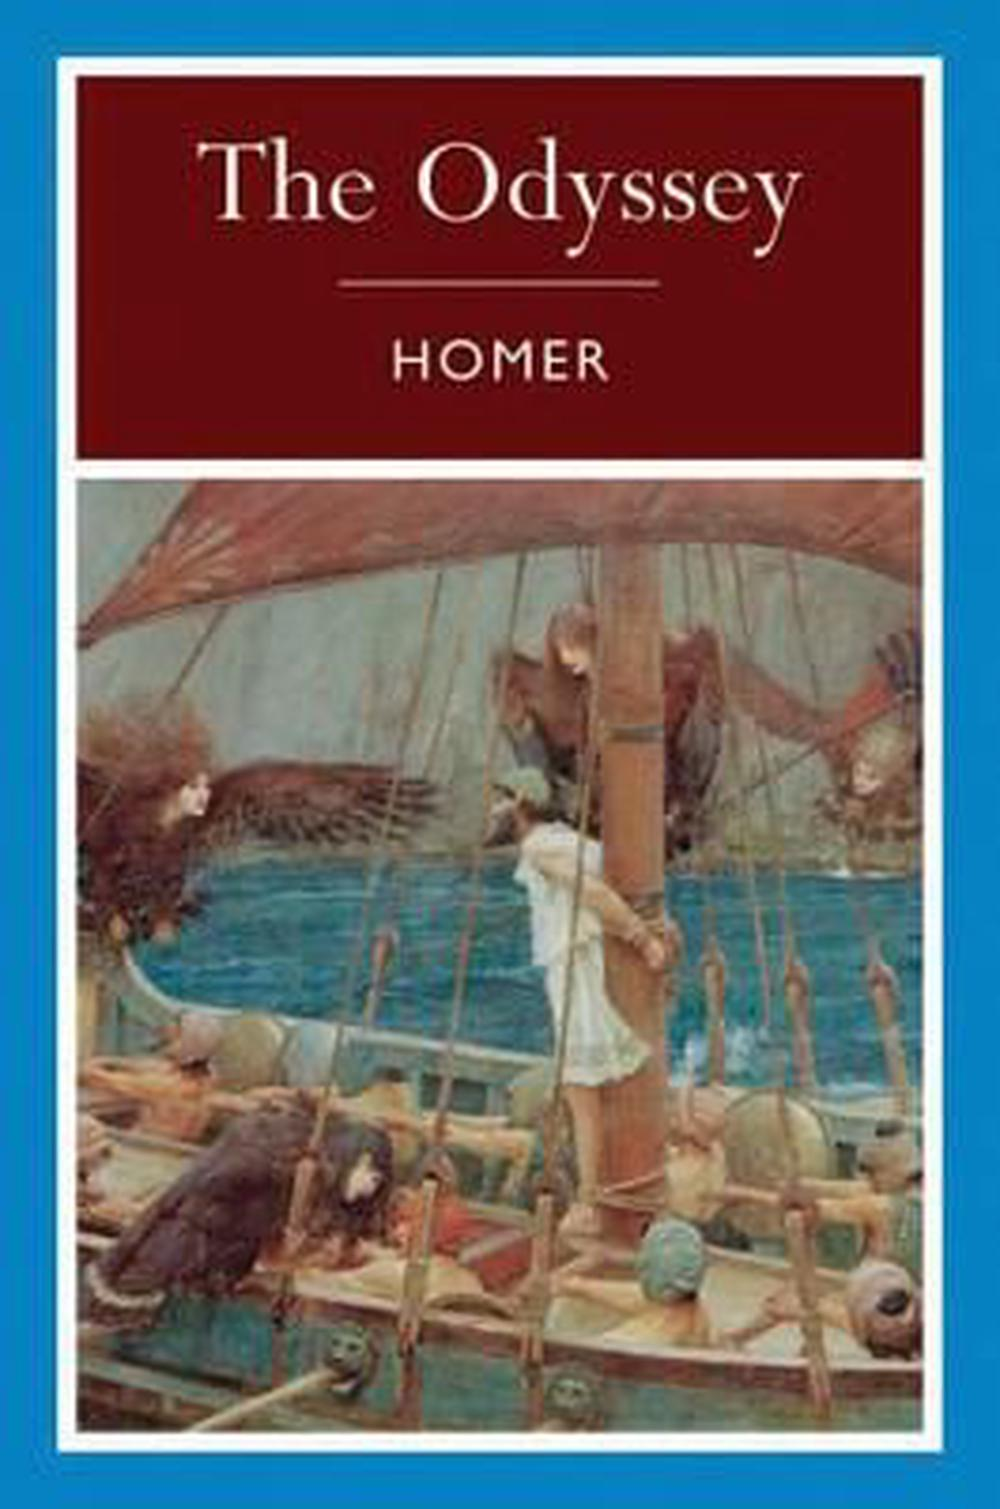 the role of the gods in the odyssey by homer The odyssey, as it is well known commentary on the role of narrative in homer's epic the inspiration of gods on humans is embodied by the figure.